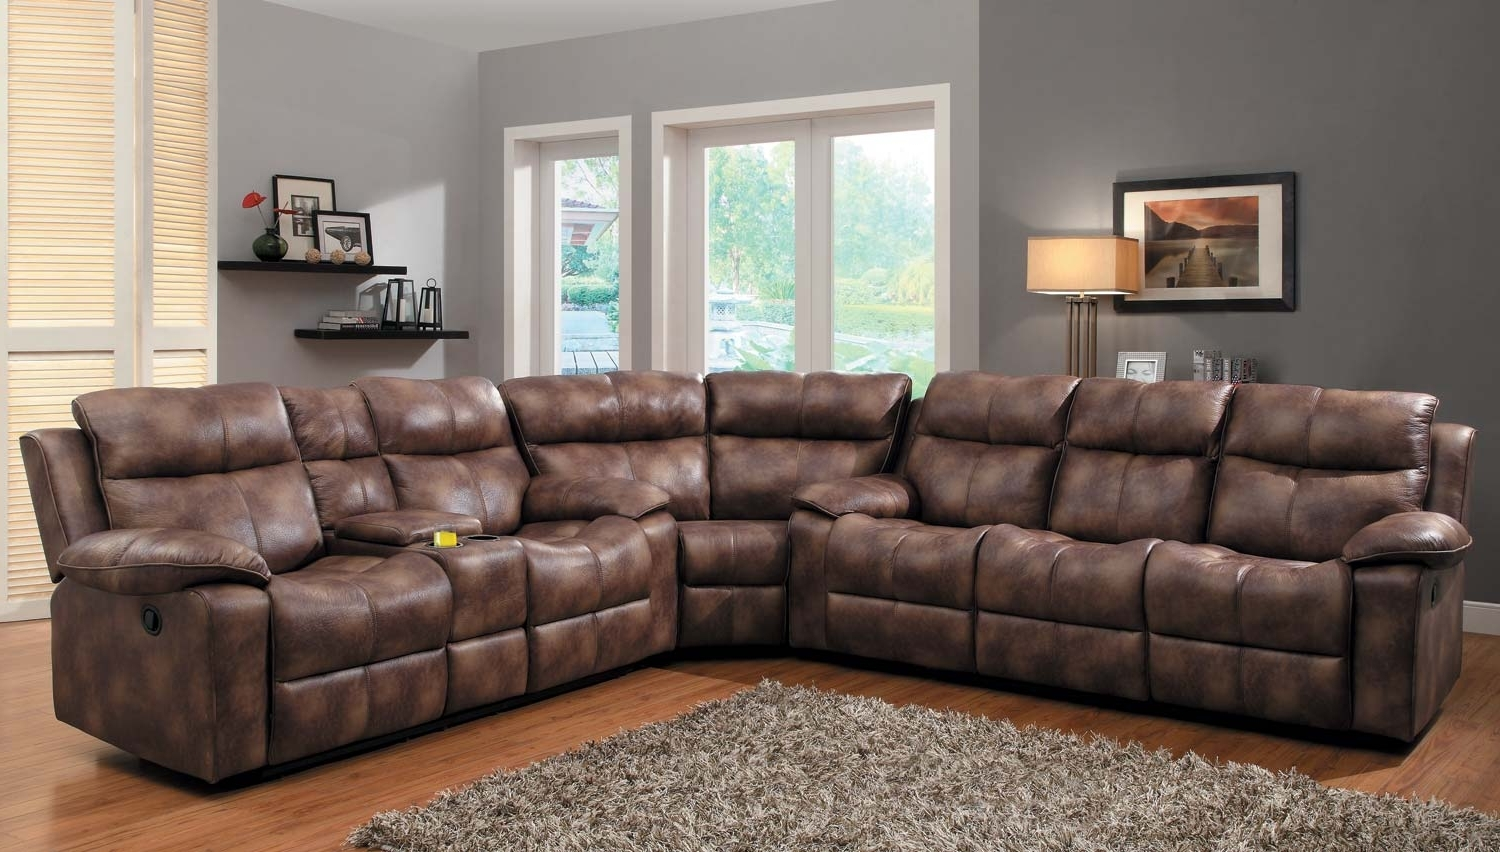 Sectional Sofas Dallas – Tourdecarroll For Latest Dallas Sectional Sofas (View 2 of 15)